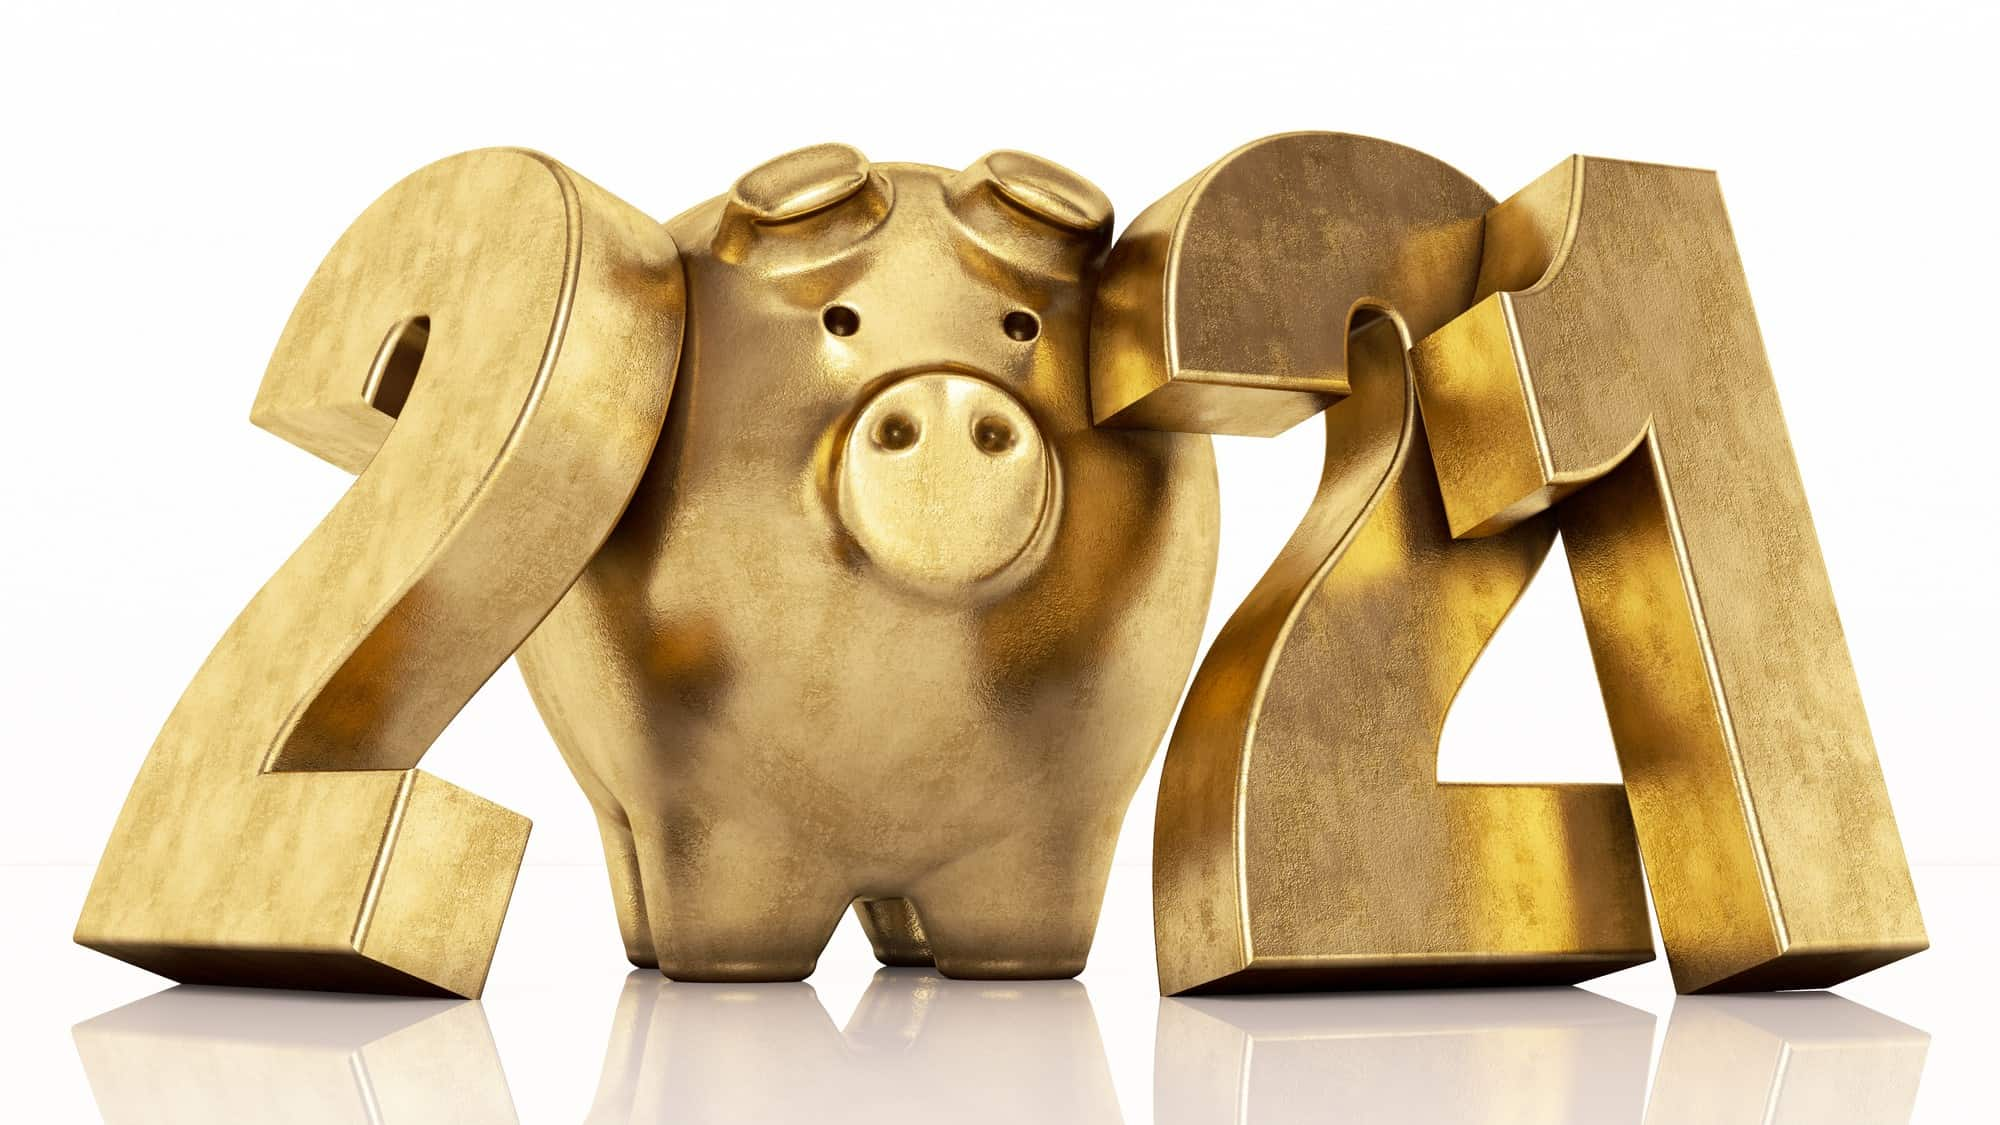 best asx 200 shares of financial year 2021 represented by 2021 formed with gold piggy bank